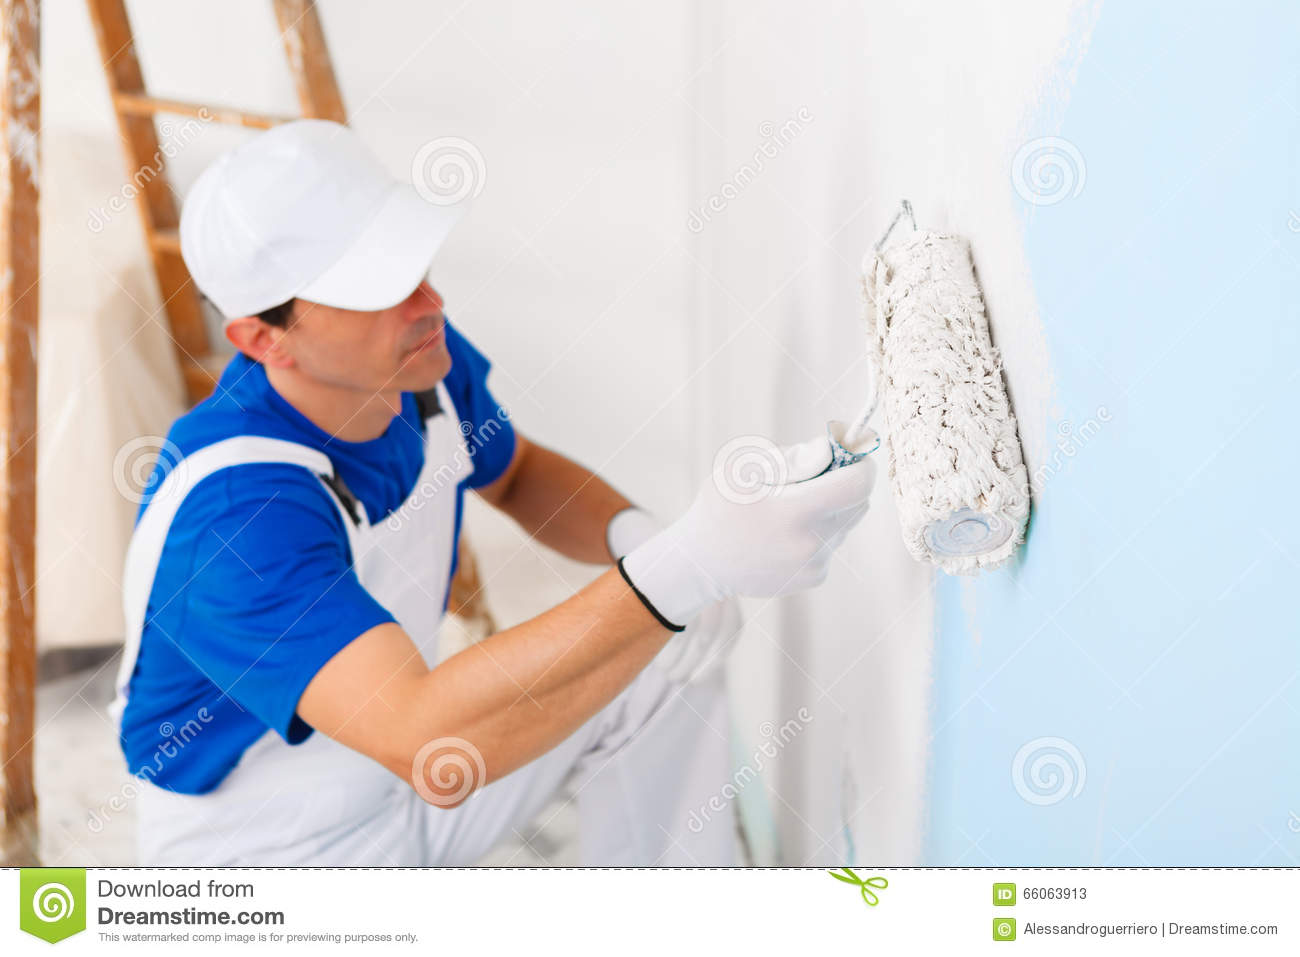 Painter Painting A Wall With Paint Roller Stock Photo - Image ...